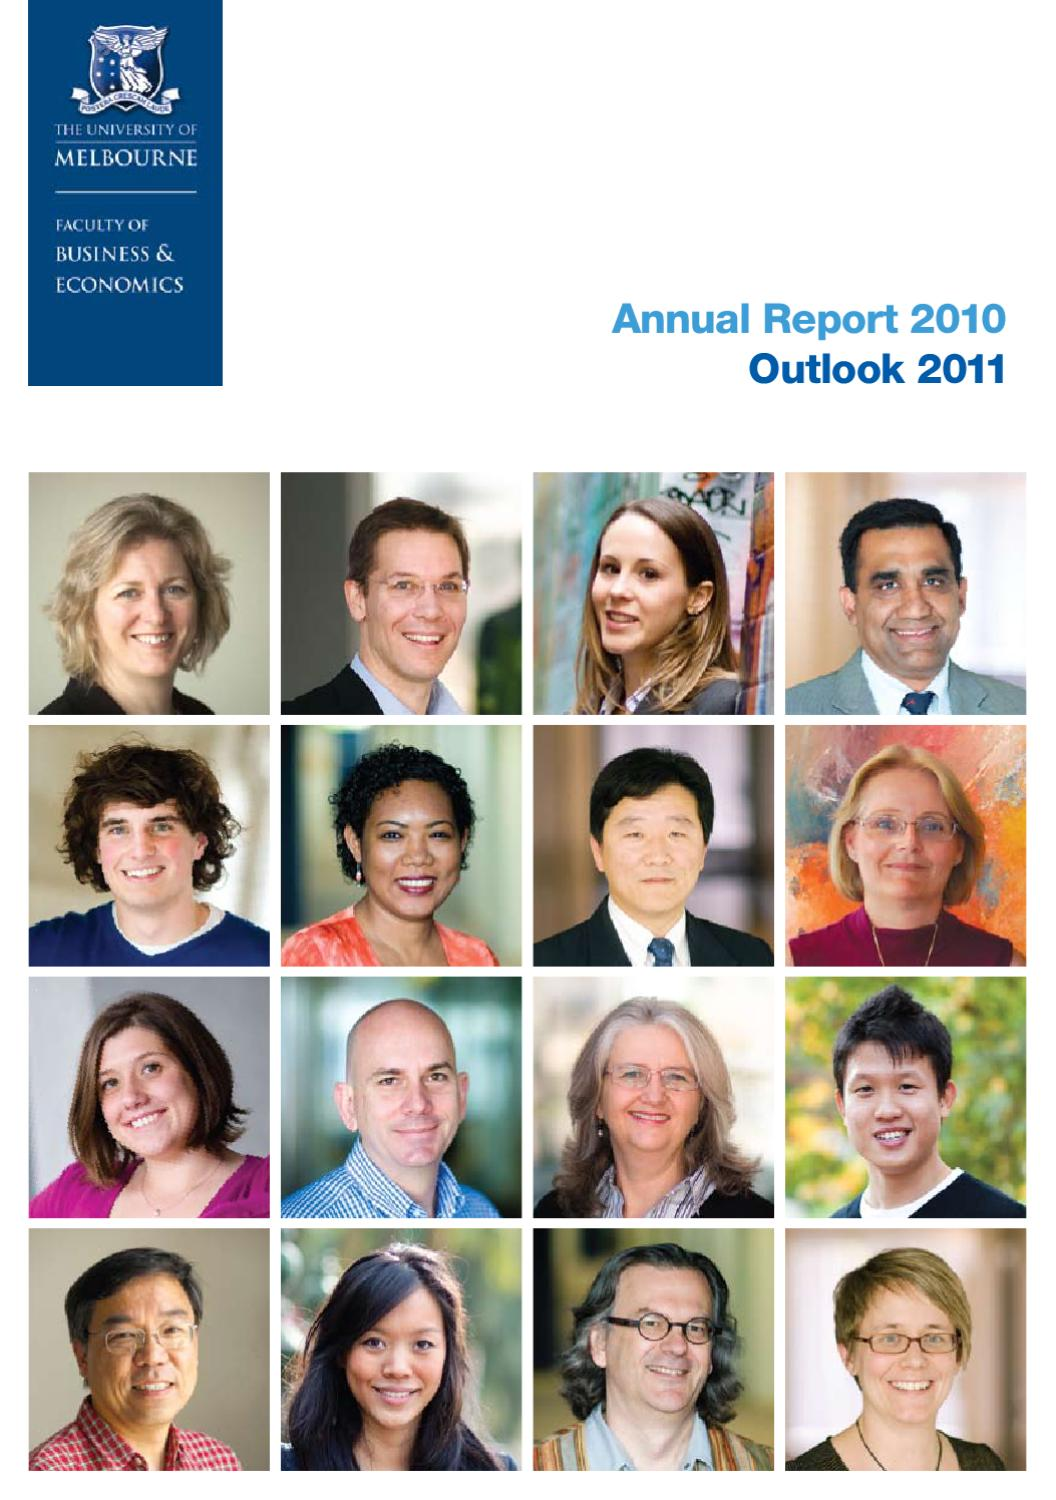 faculty of business economics annual report 2010 2011